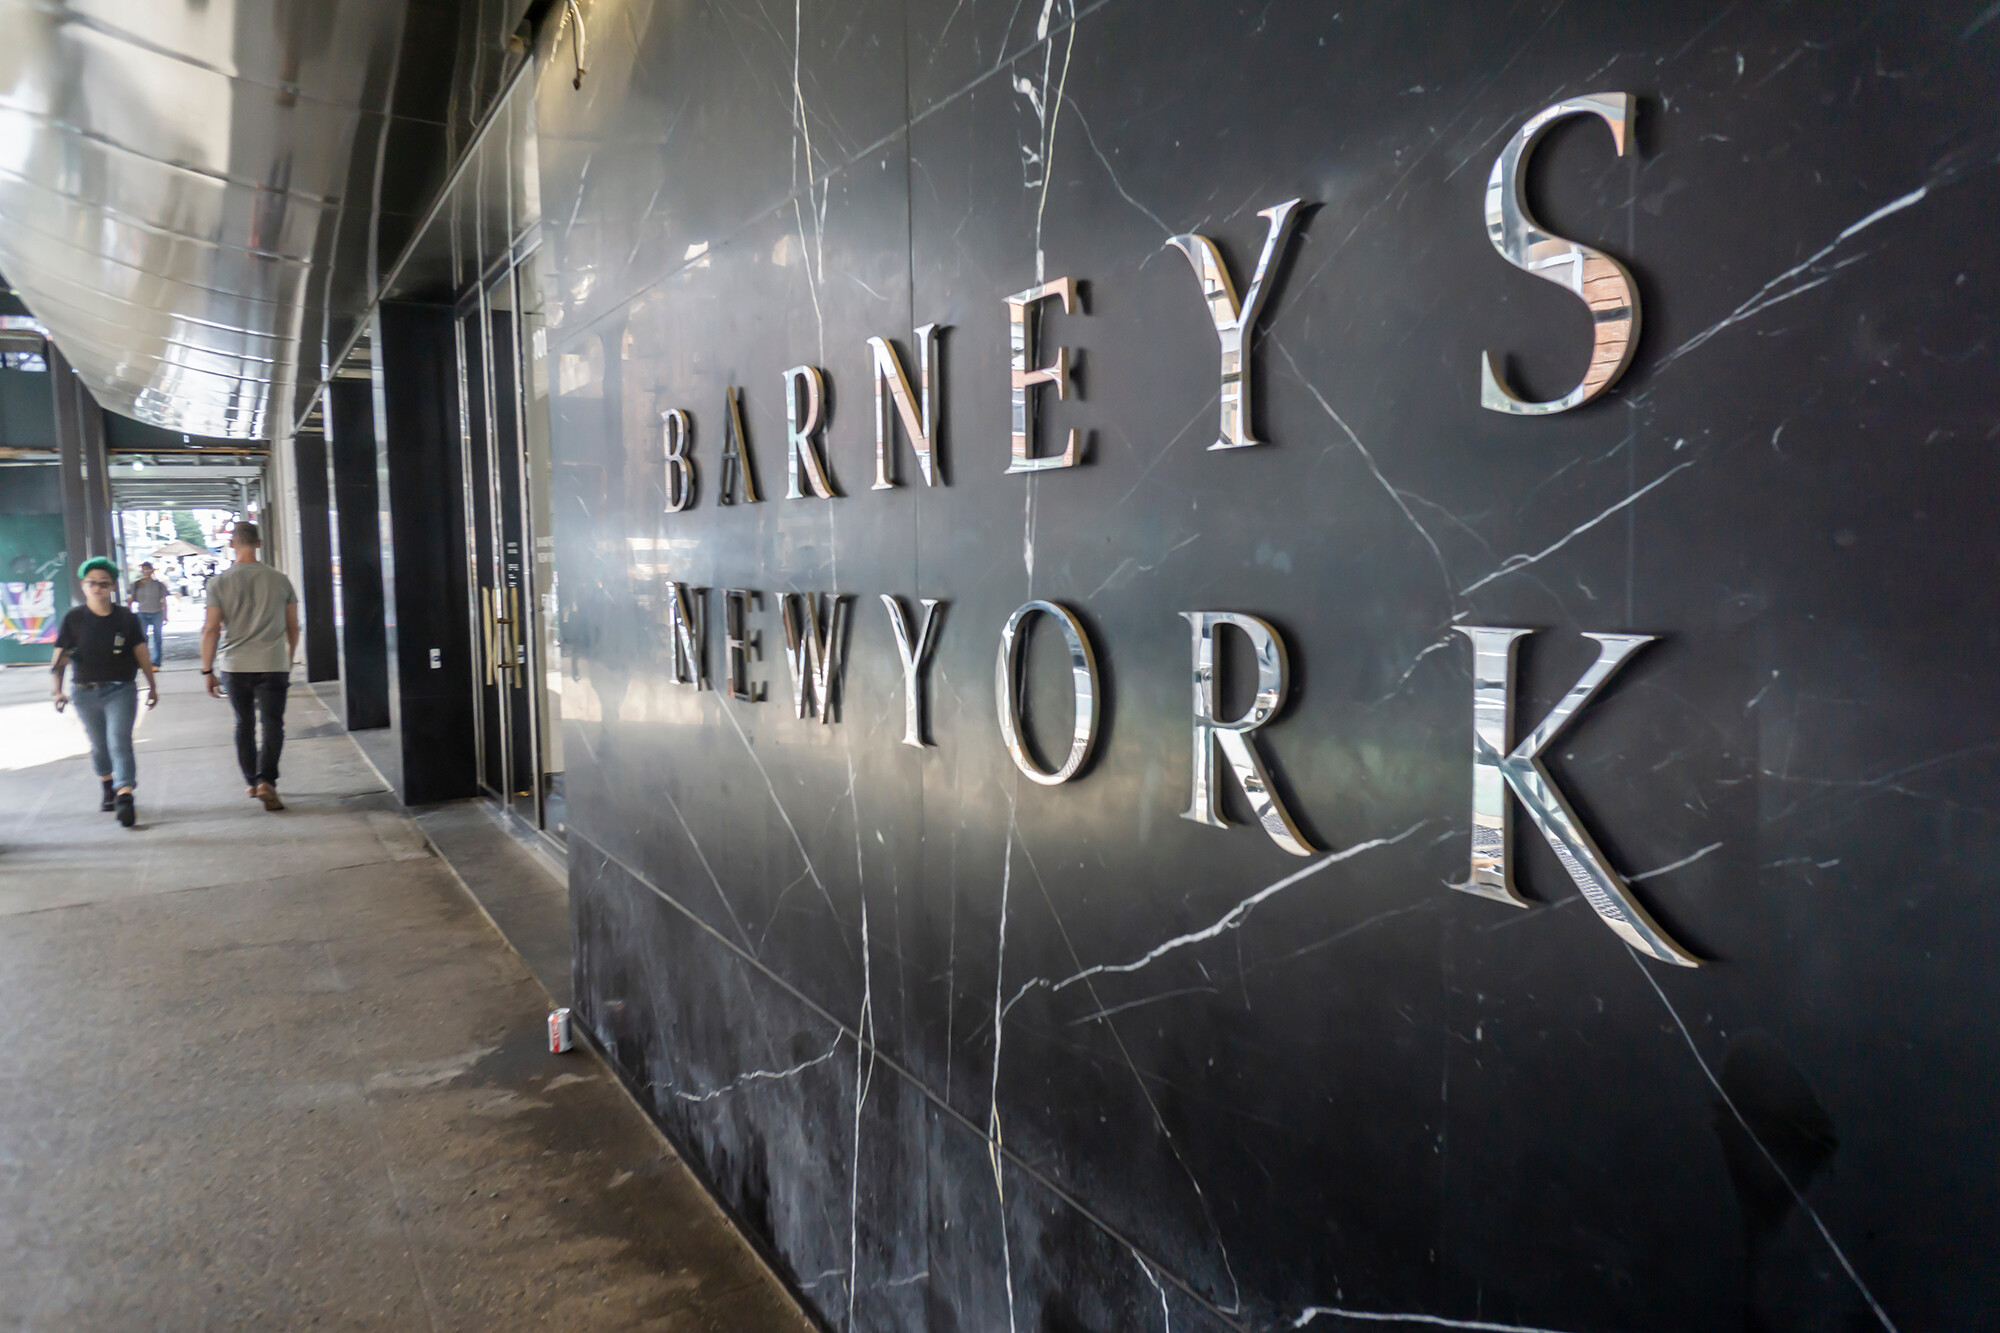 The original Barneys department store is turning into a Spirit Halloween